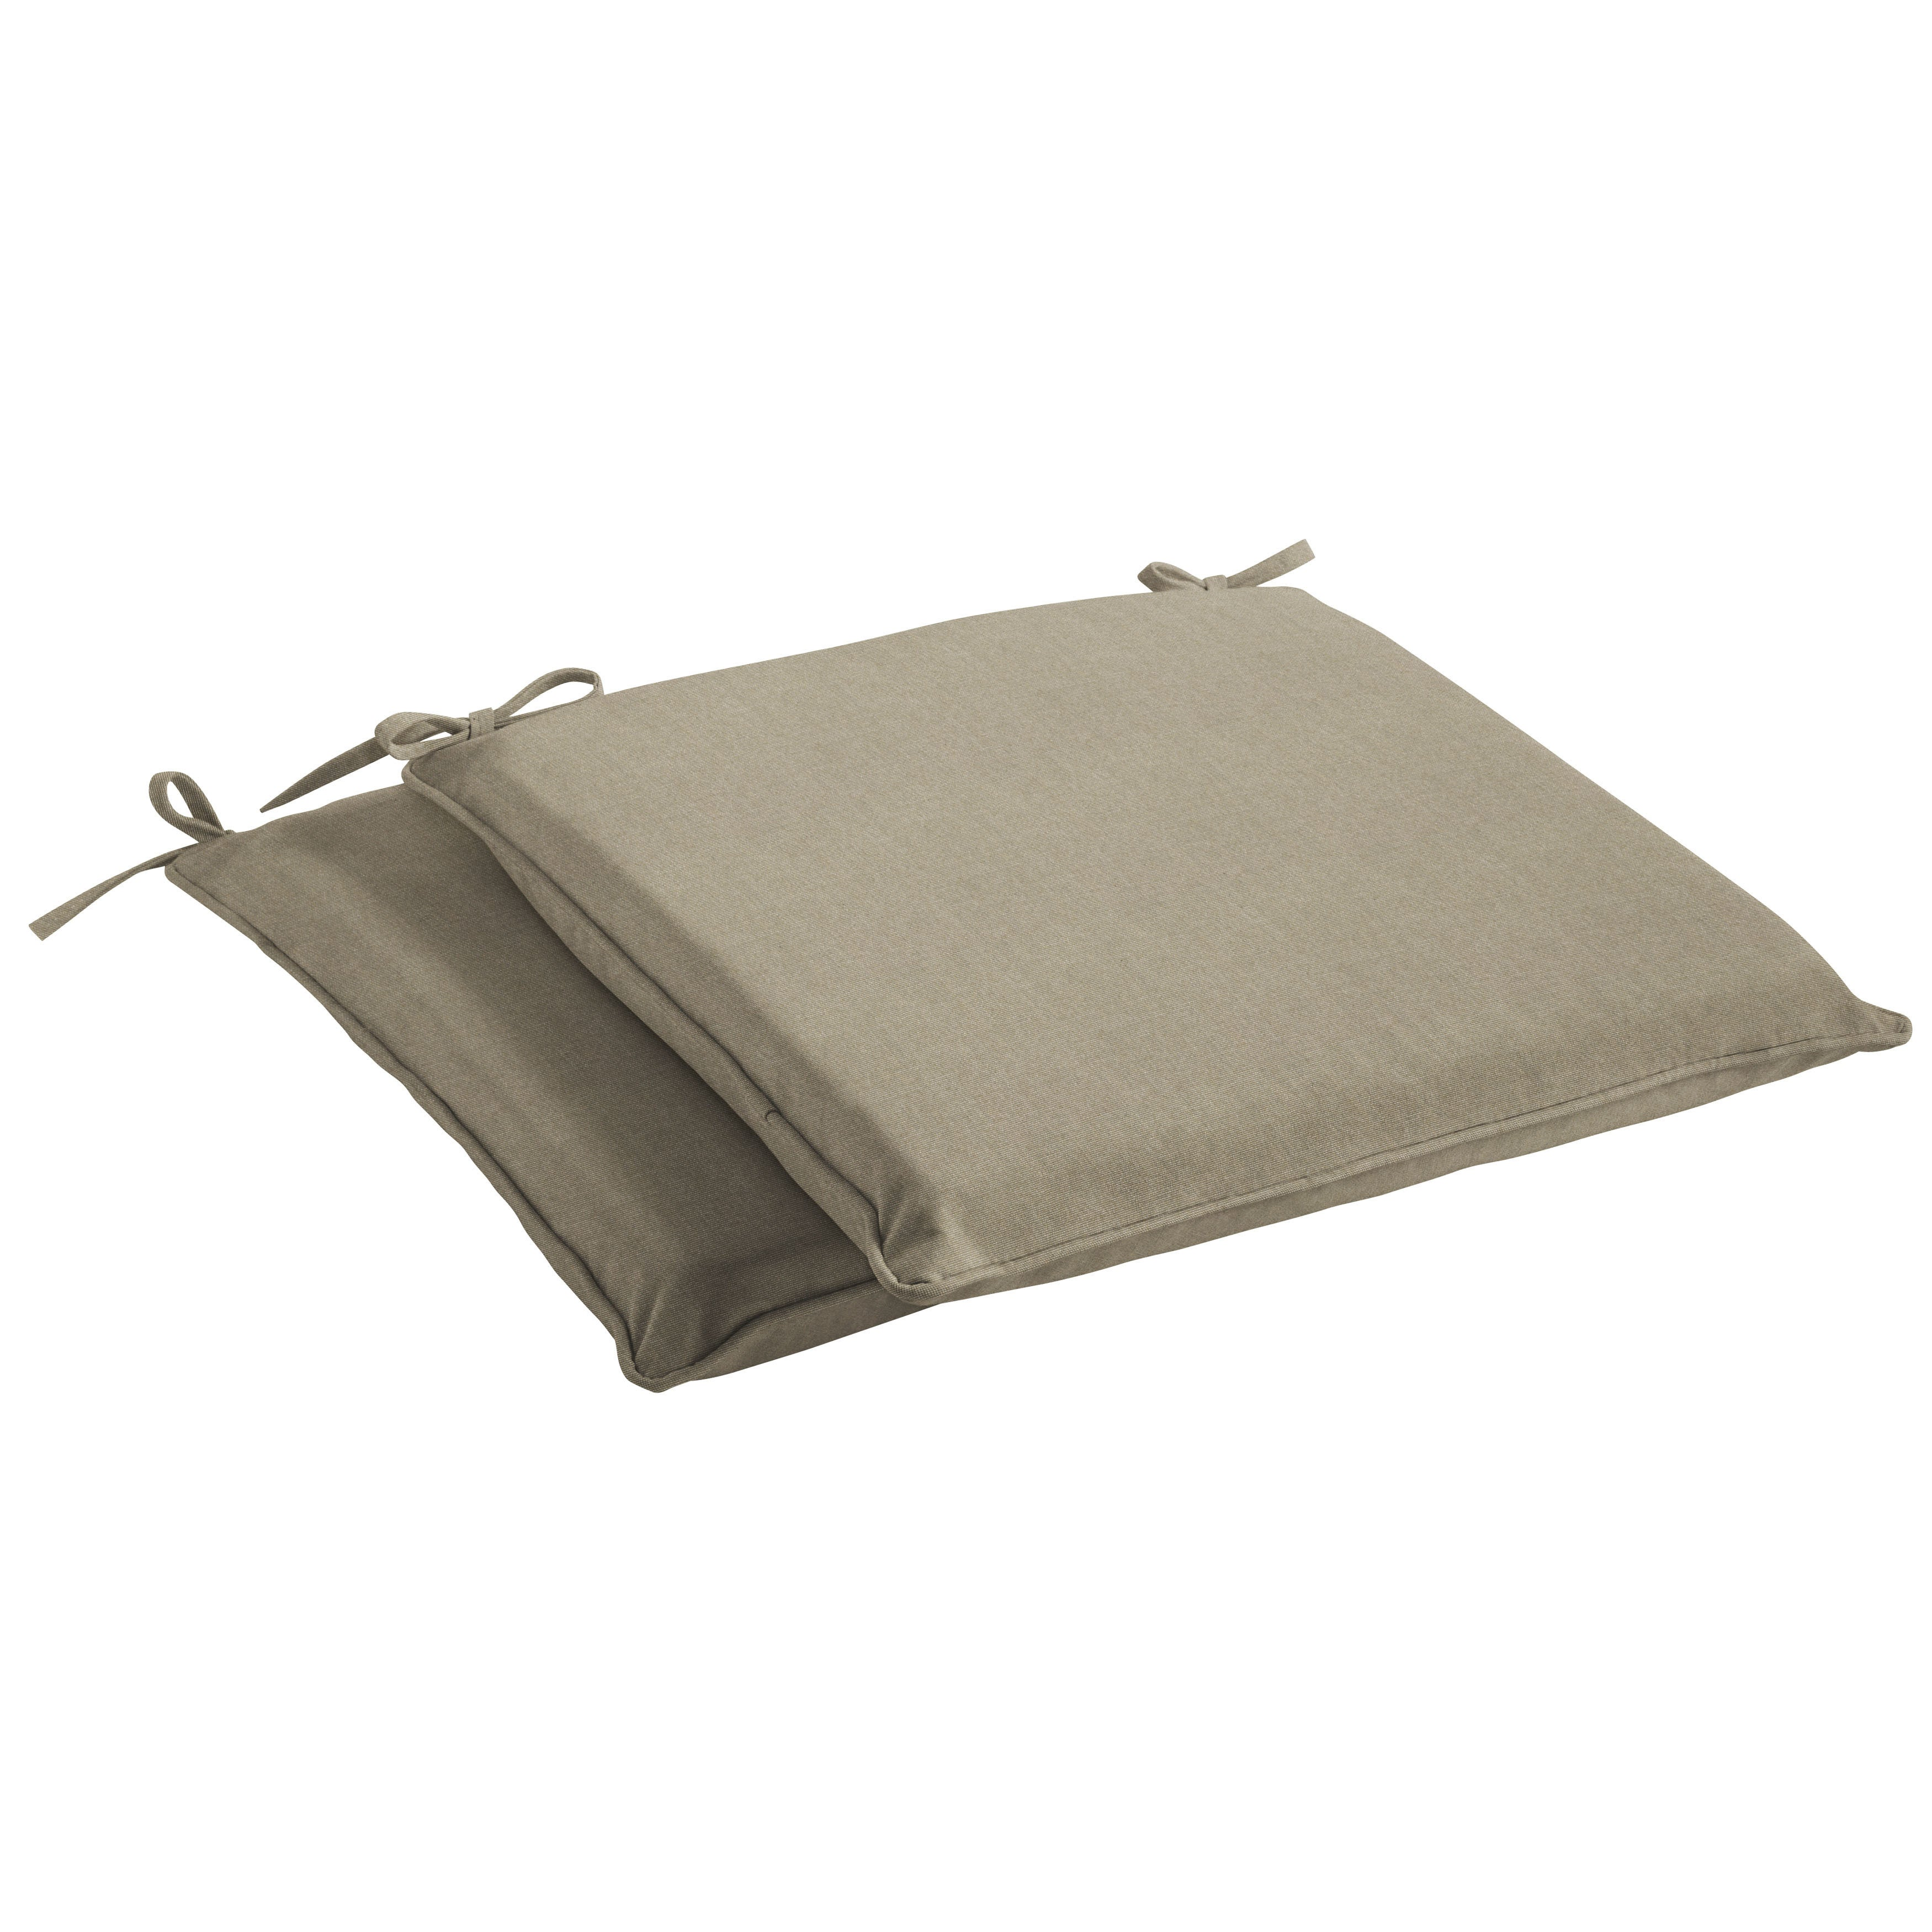 Humble + Haute Sunbrella Canvas Taupe Indoor/ Outdoor Cushion, Set of 2 (20 in w x 20 in d)